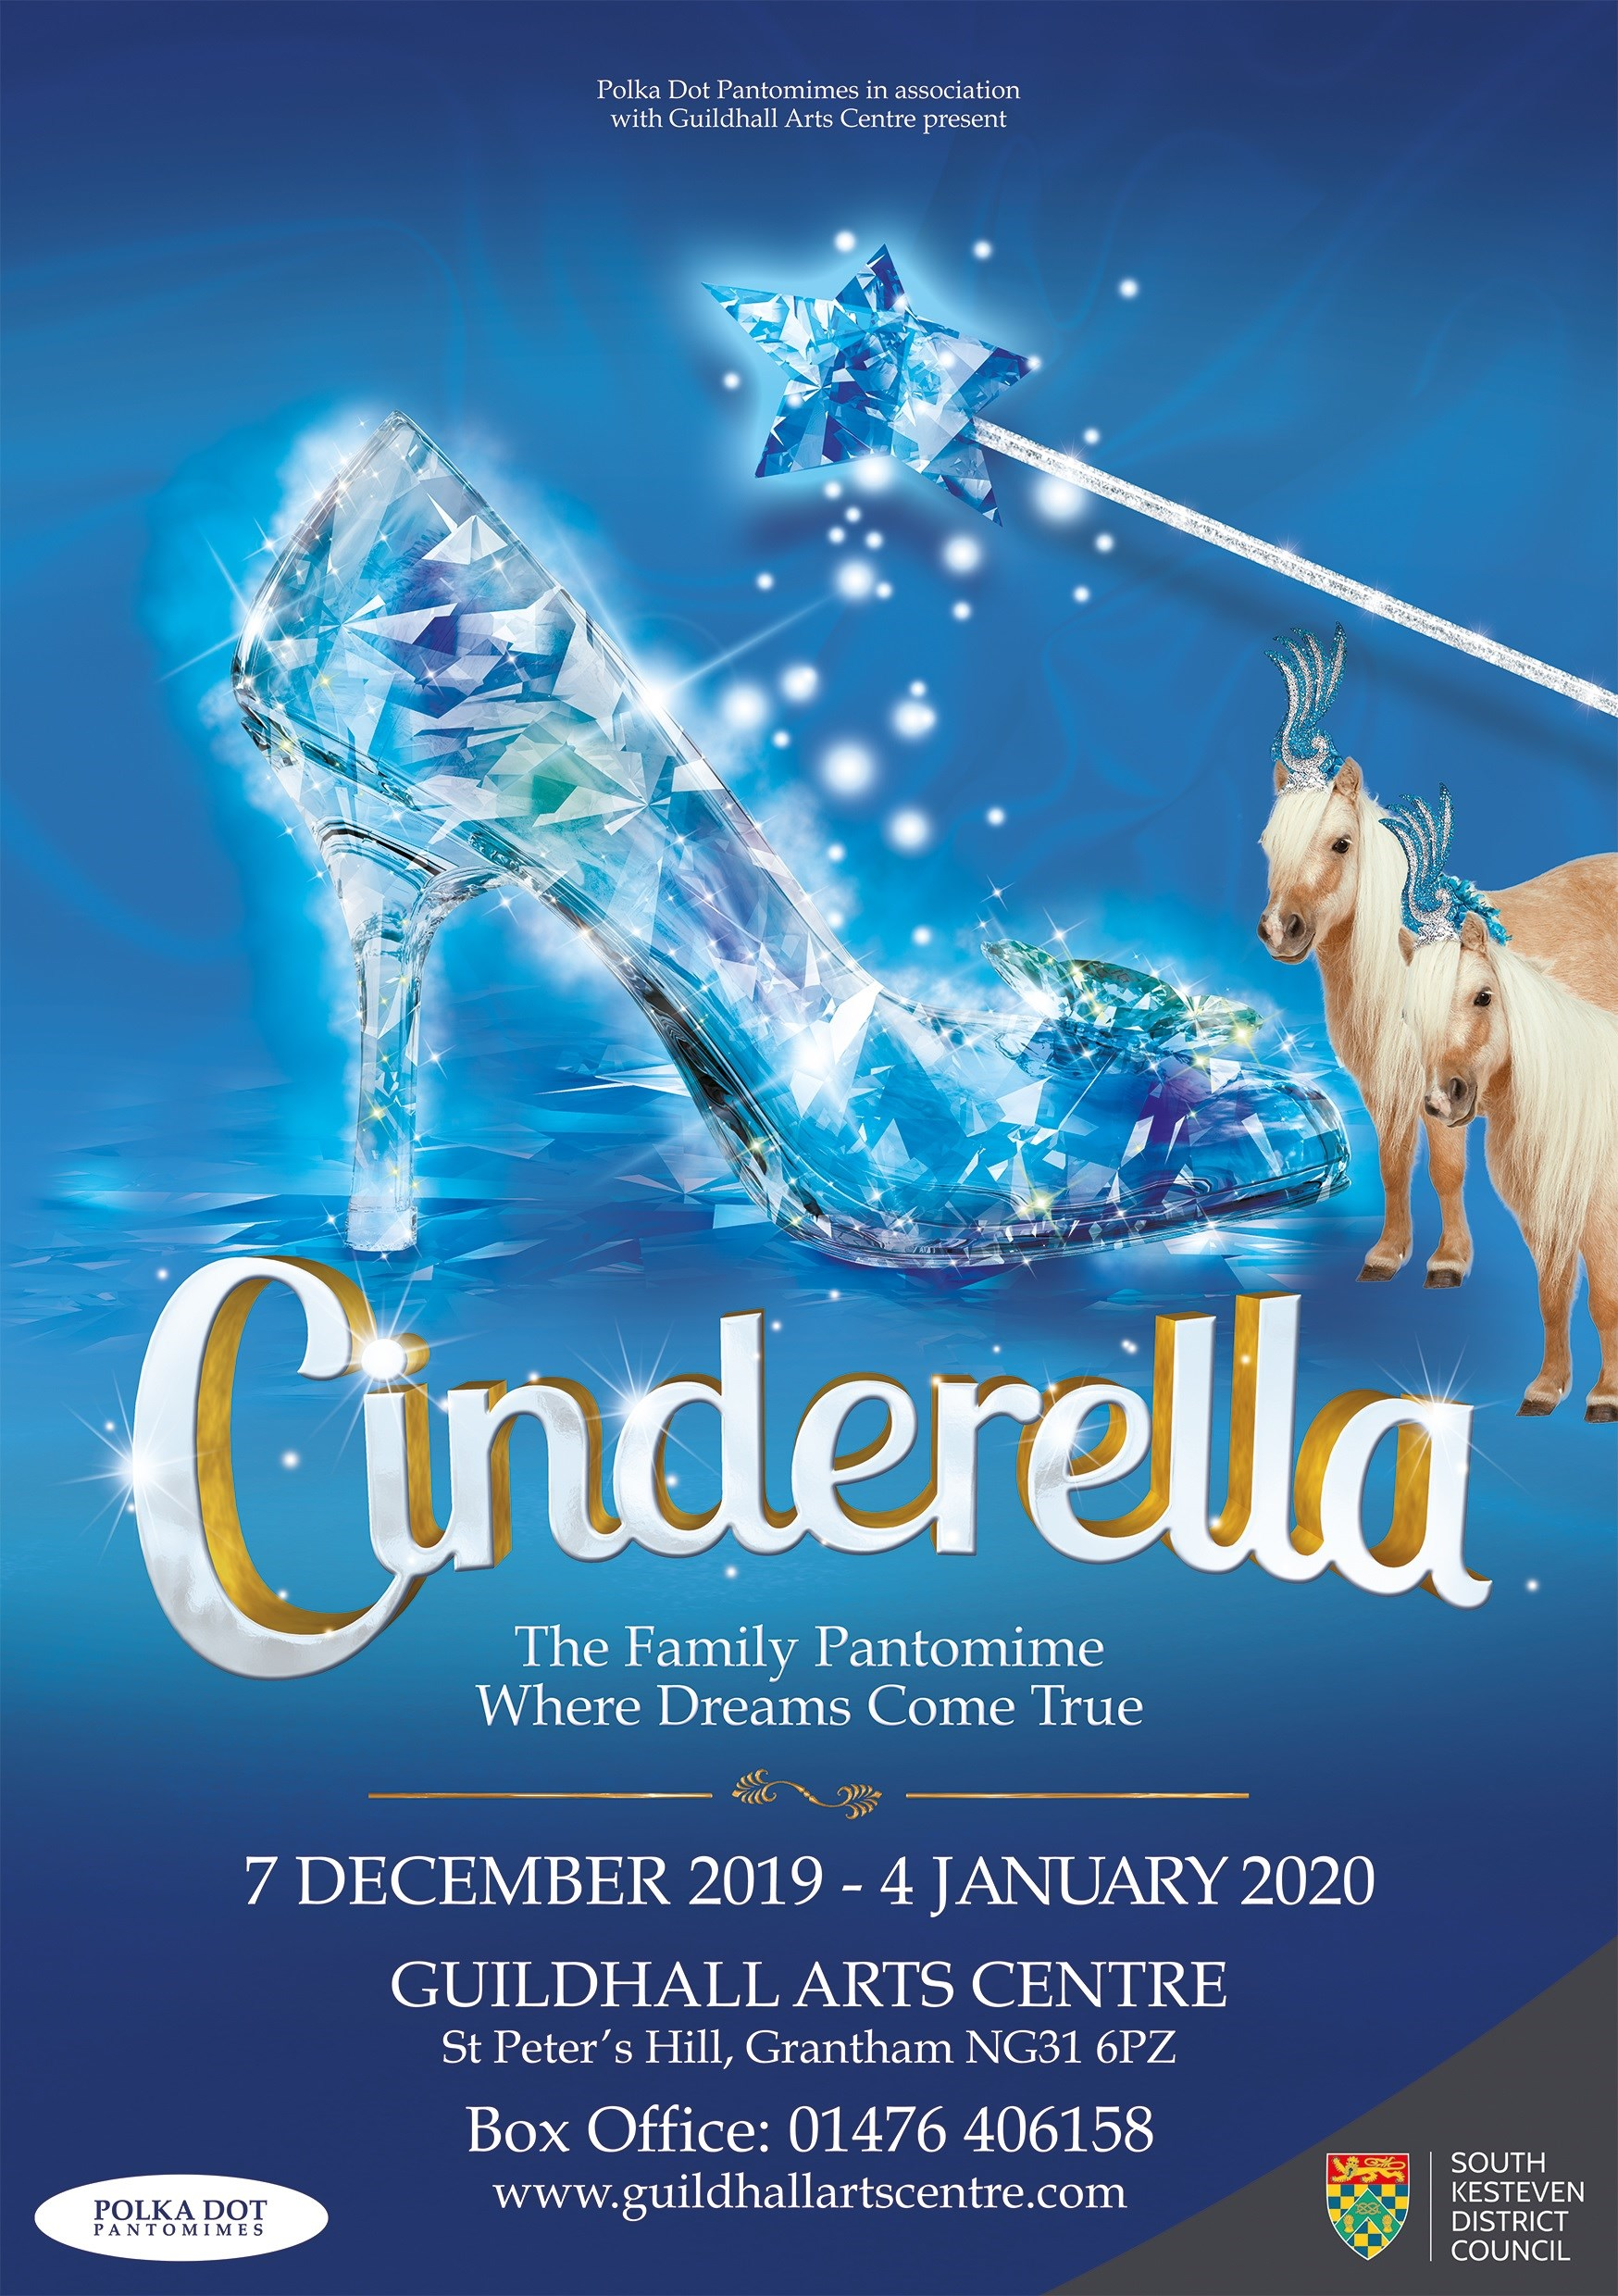 Cinderella - Guildhall Arts Centre Pantomime